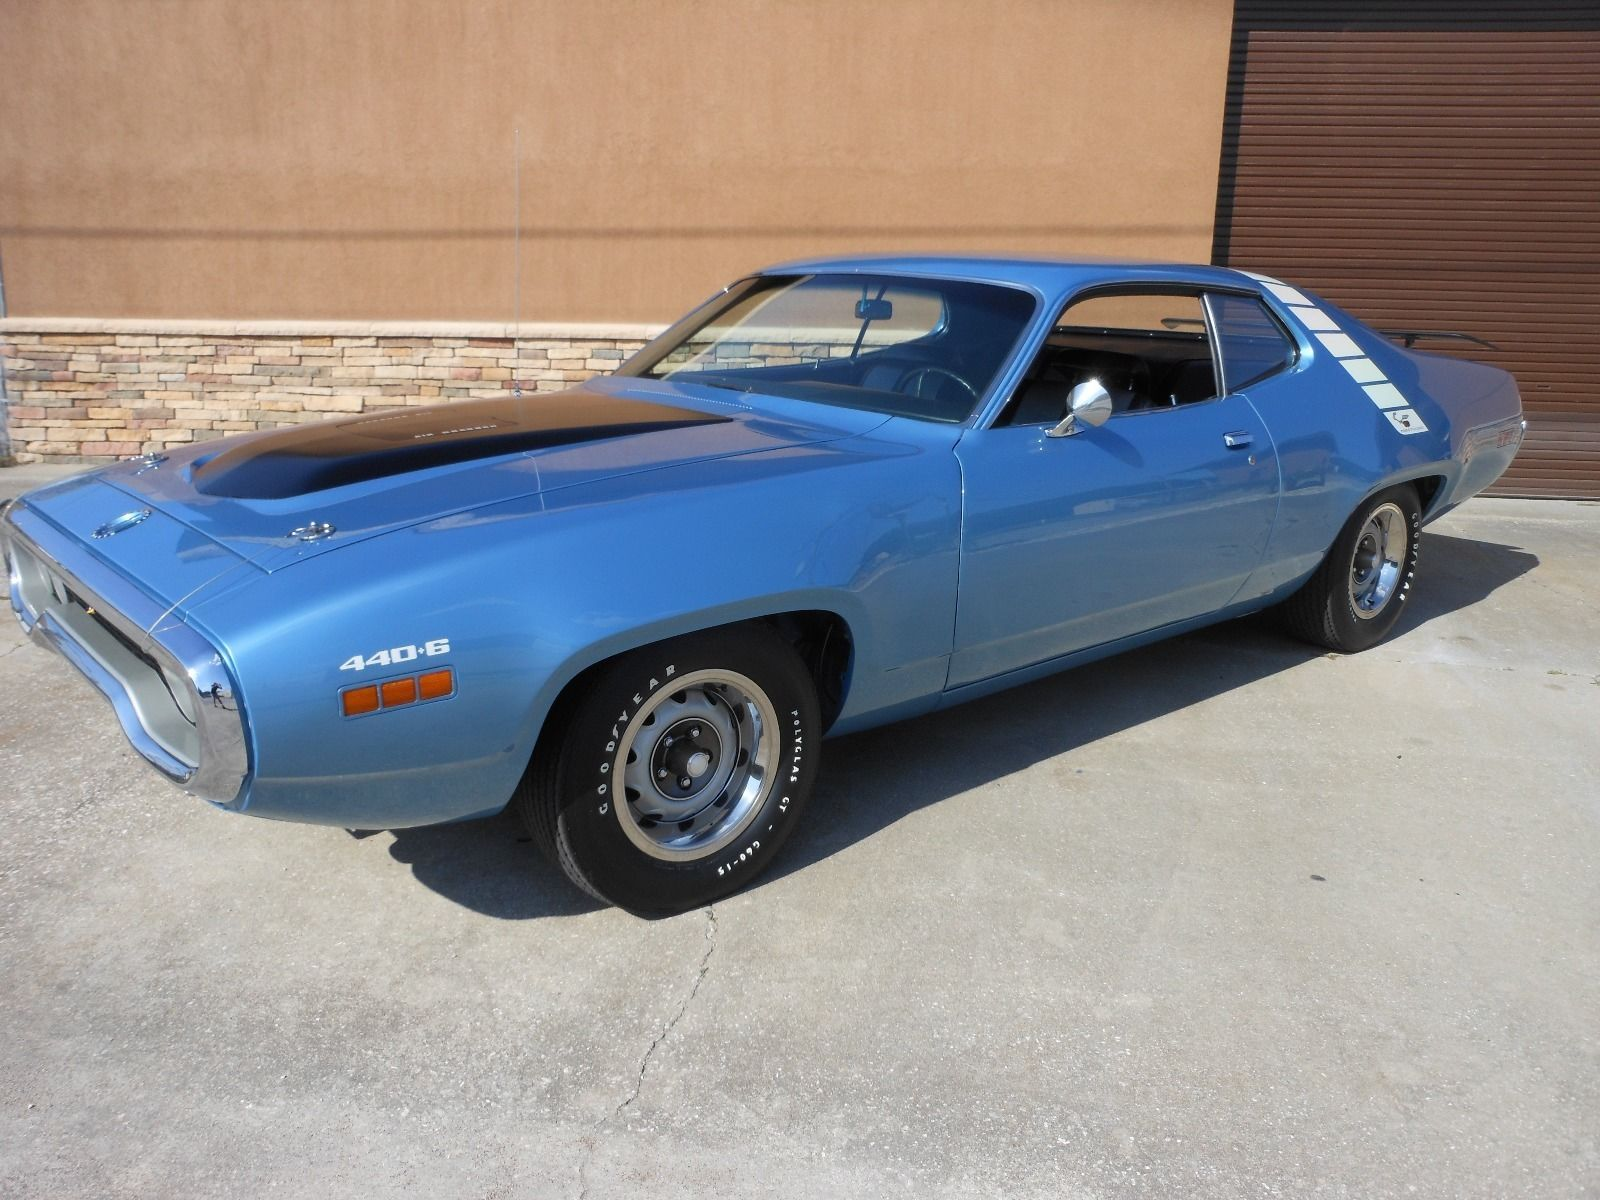 1971 plymouth road runner in gb2 glacial blue manual transmission road runner  [ 1600 x 1200 Pixel ]